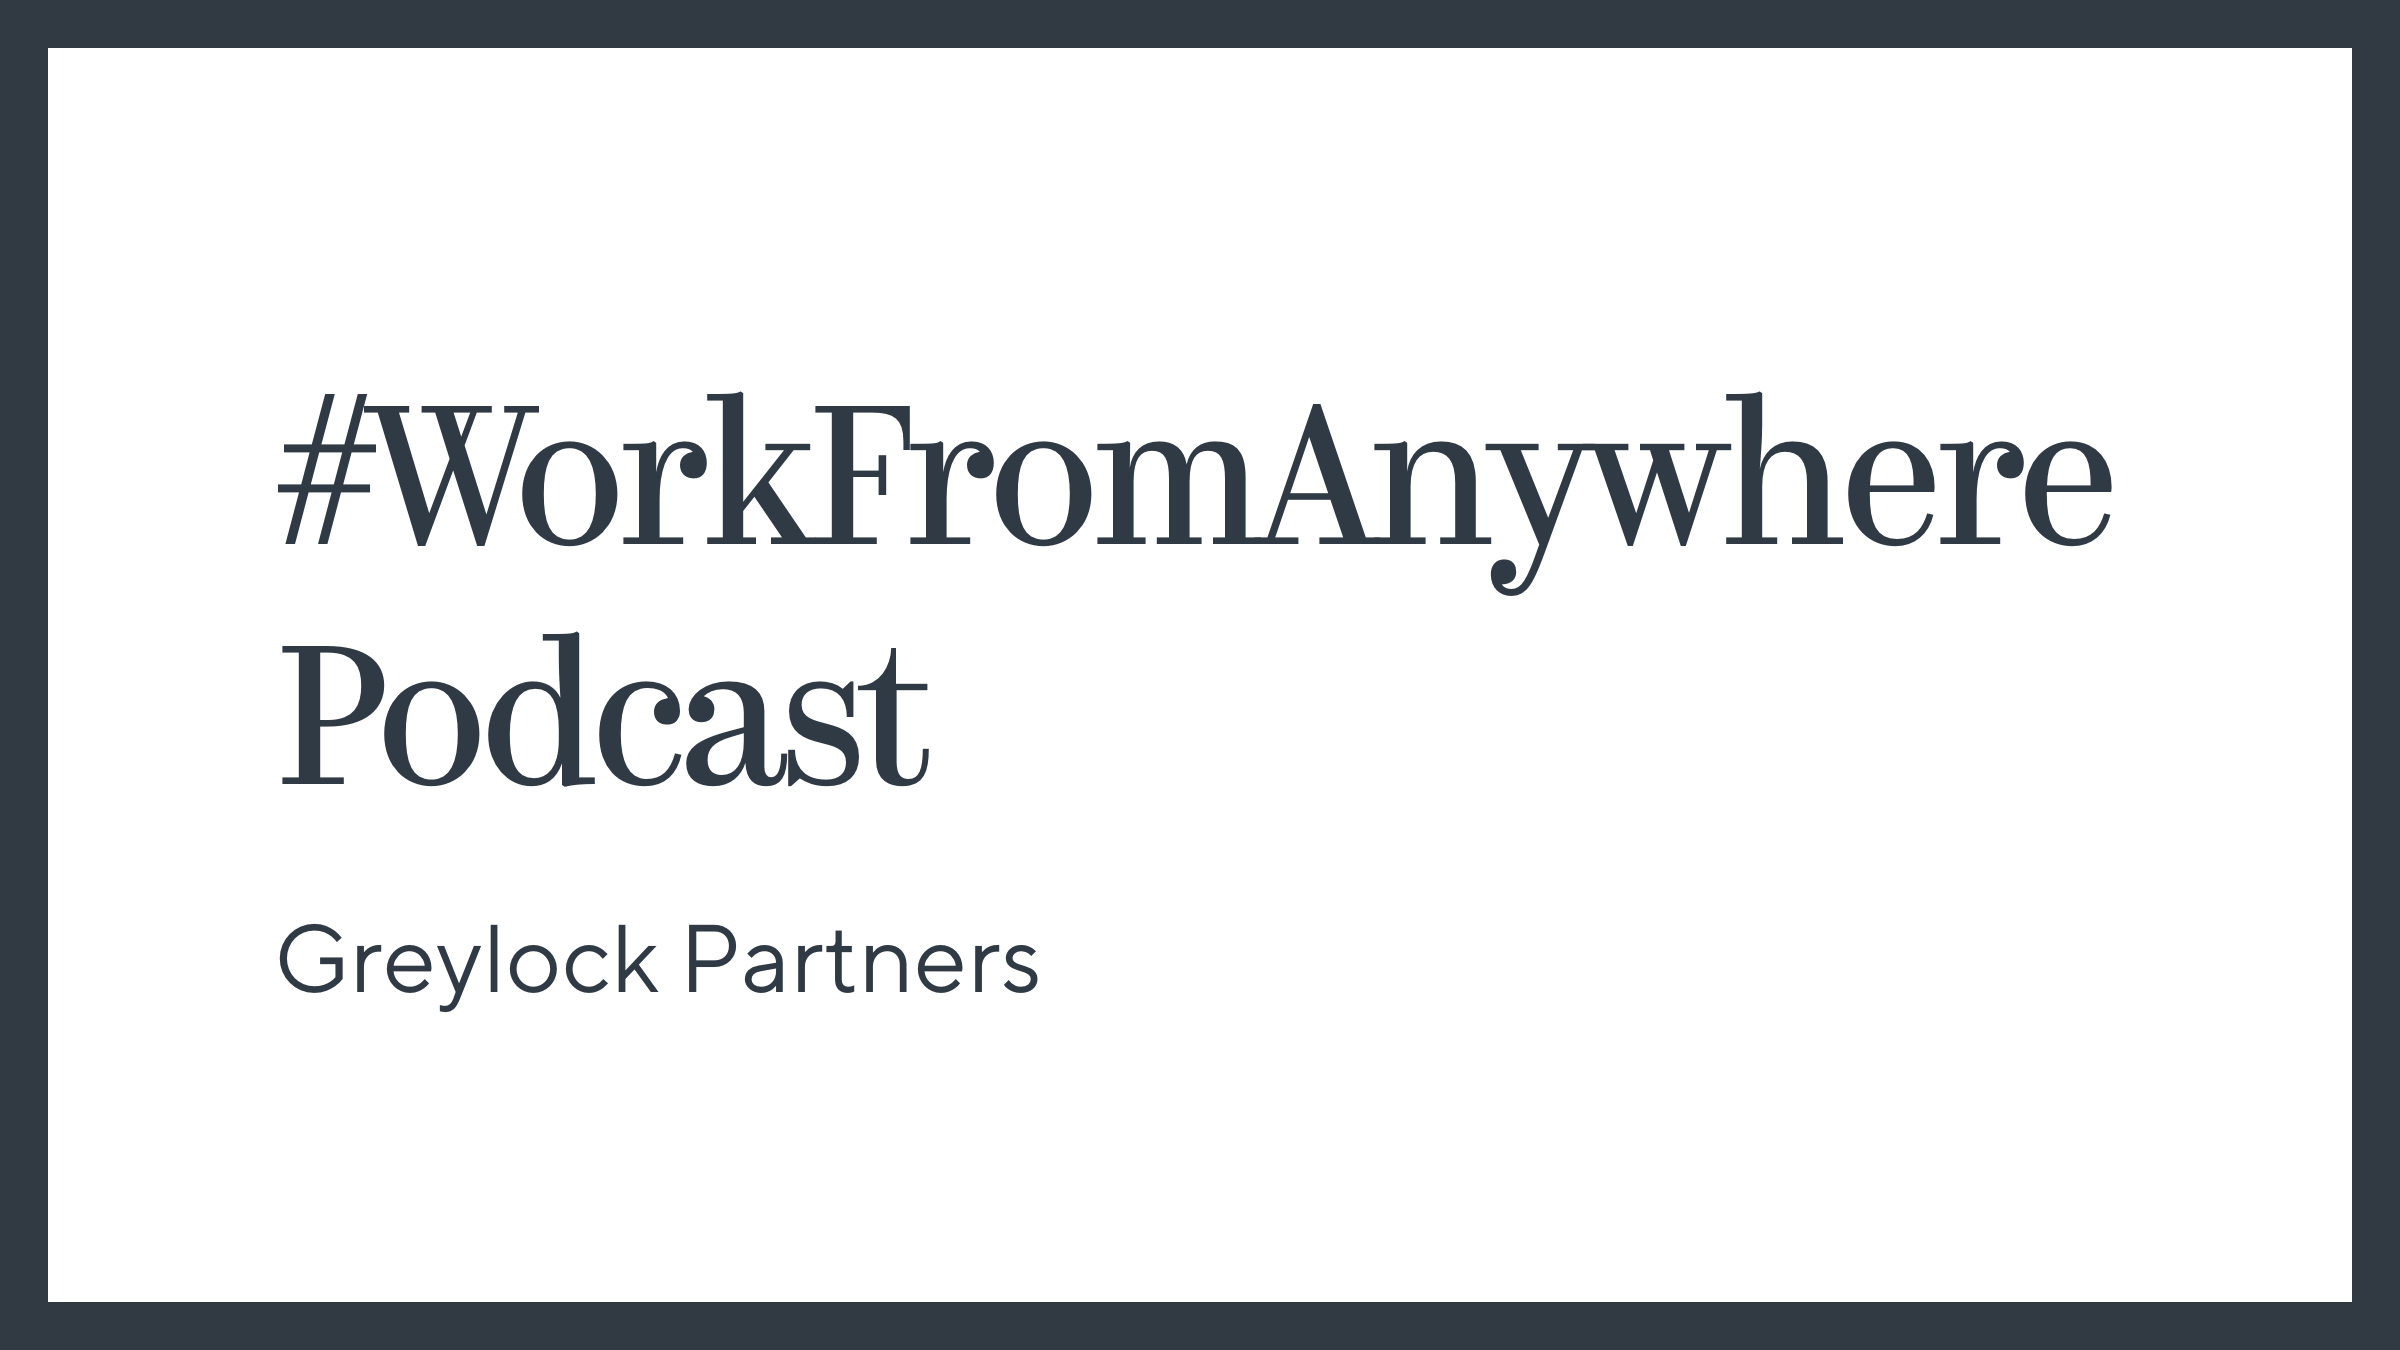 #WorkFromAnywhere Podcast